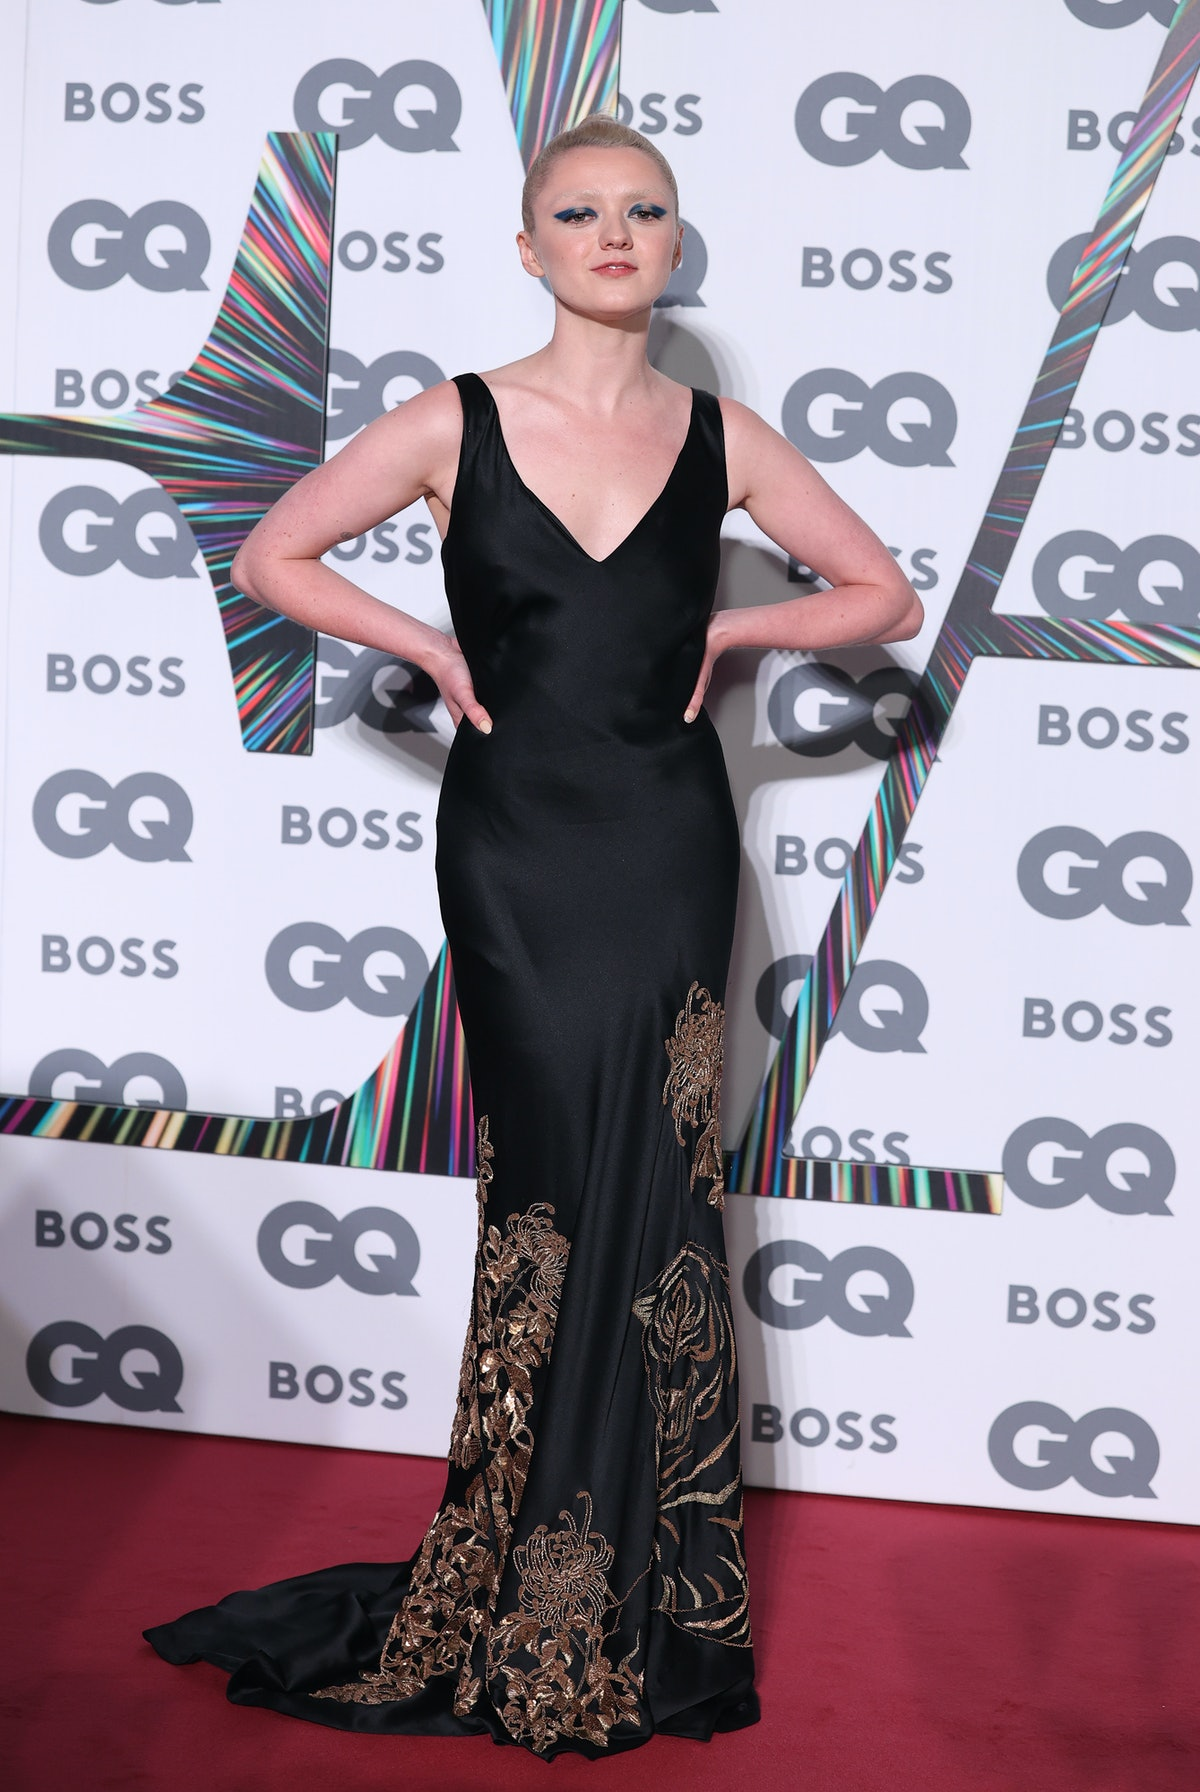 Maisie Williams in a black gown and blonde hair.